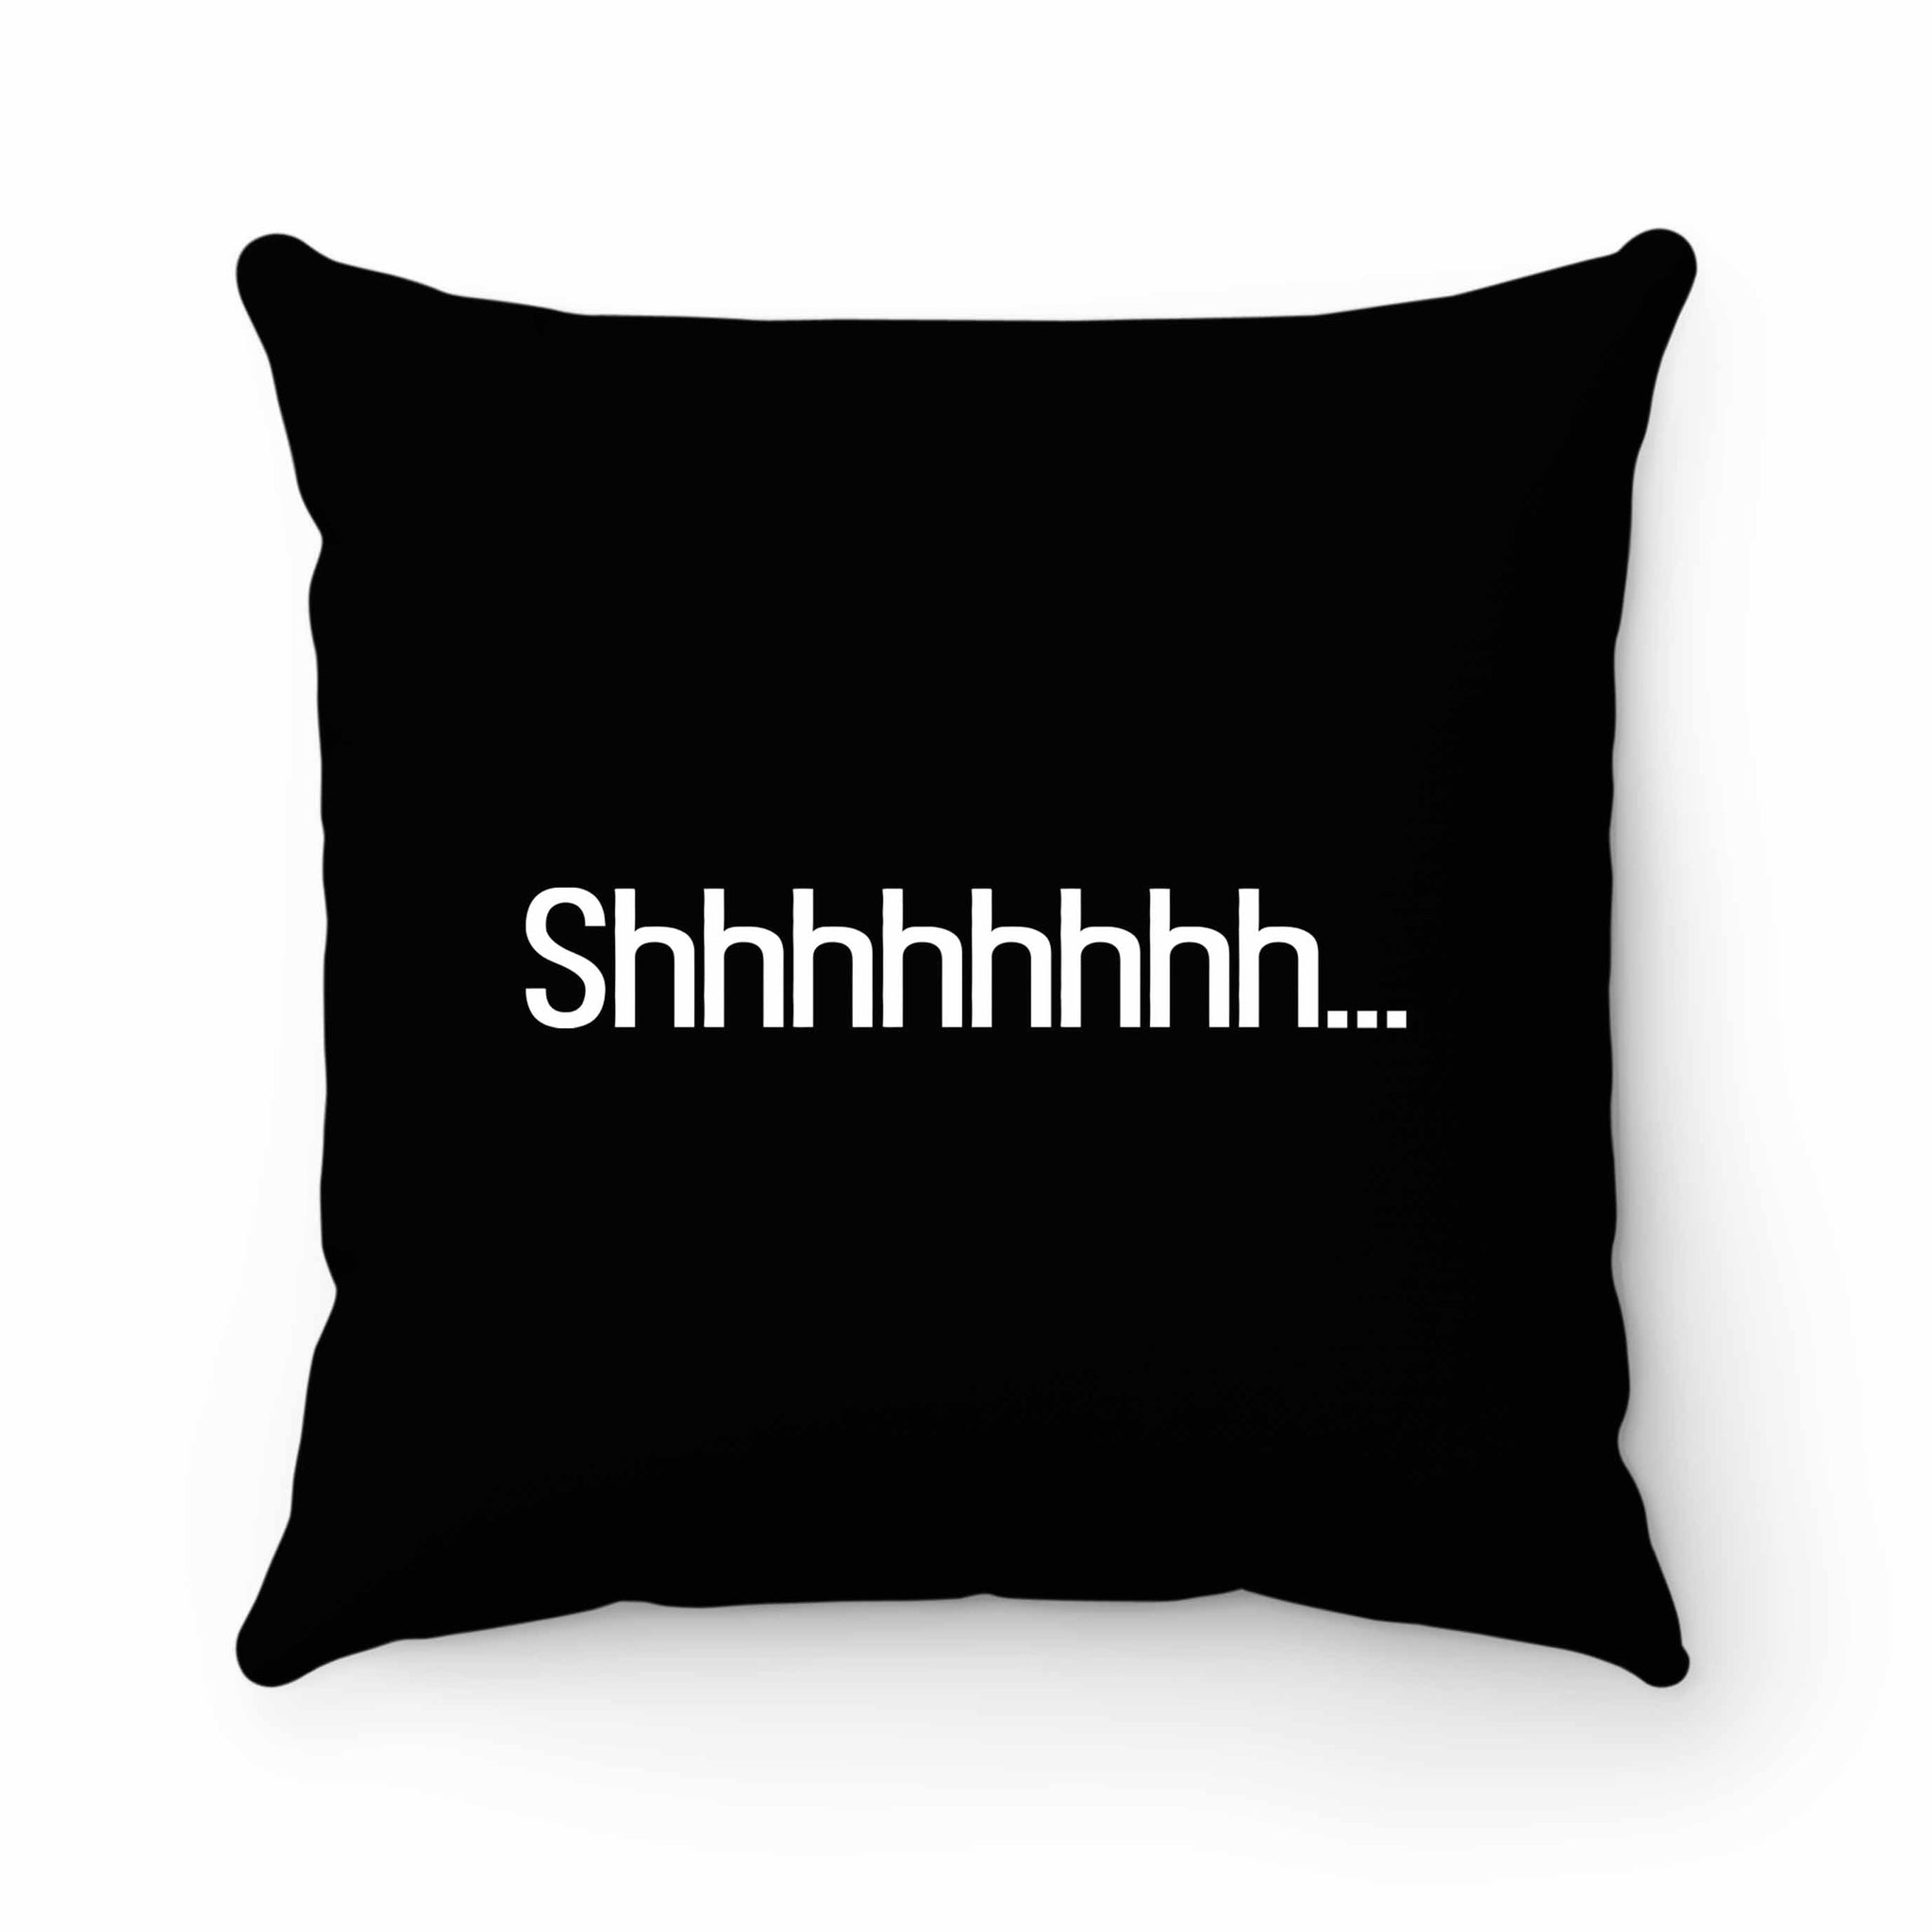 Shhhhh Pillow Case Cover